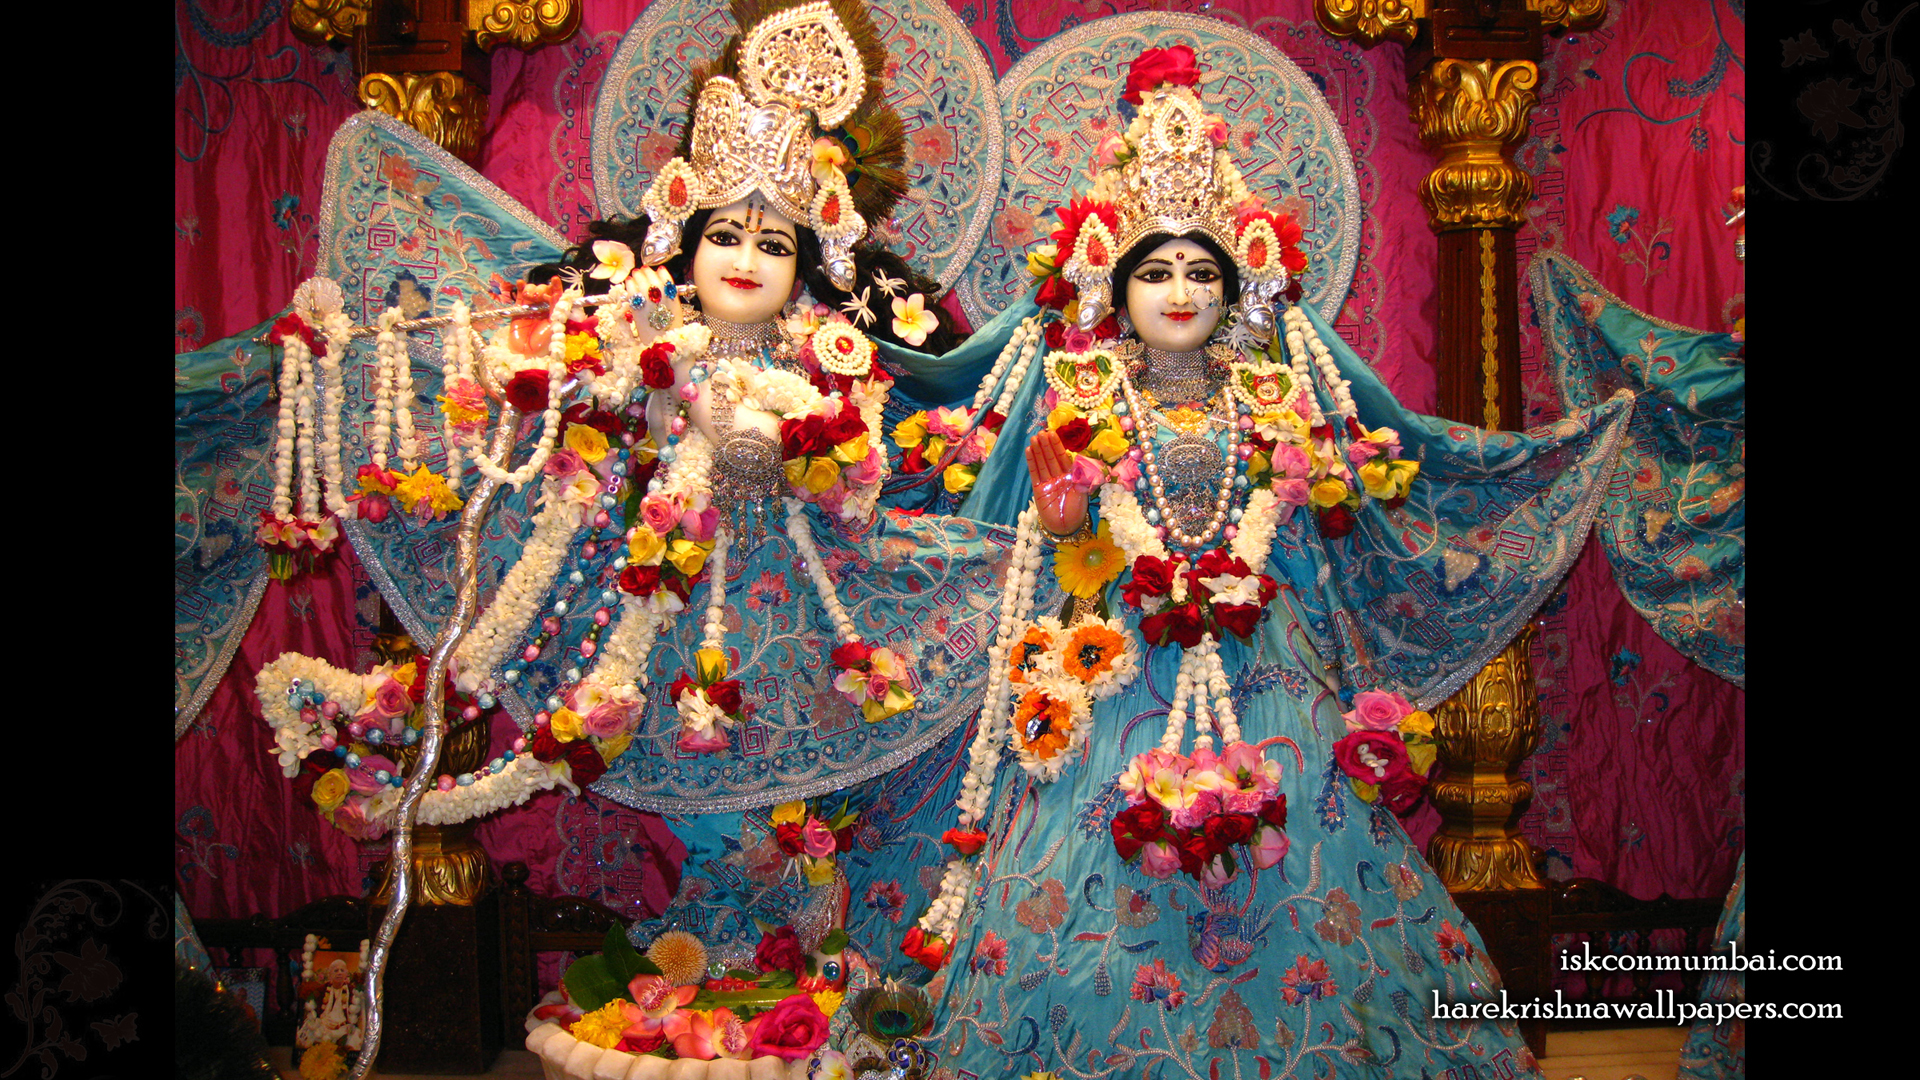 Sri Sri Radha Rasabihari Wallpaper (004) Size 1920x1080 Download